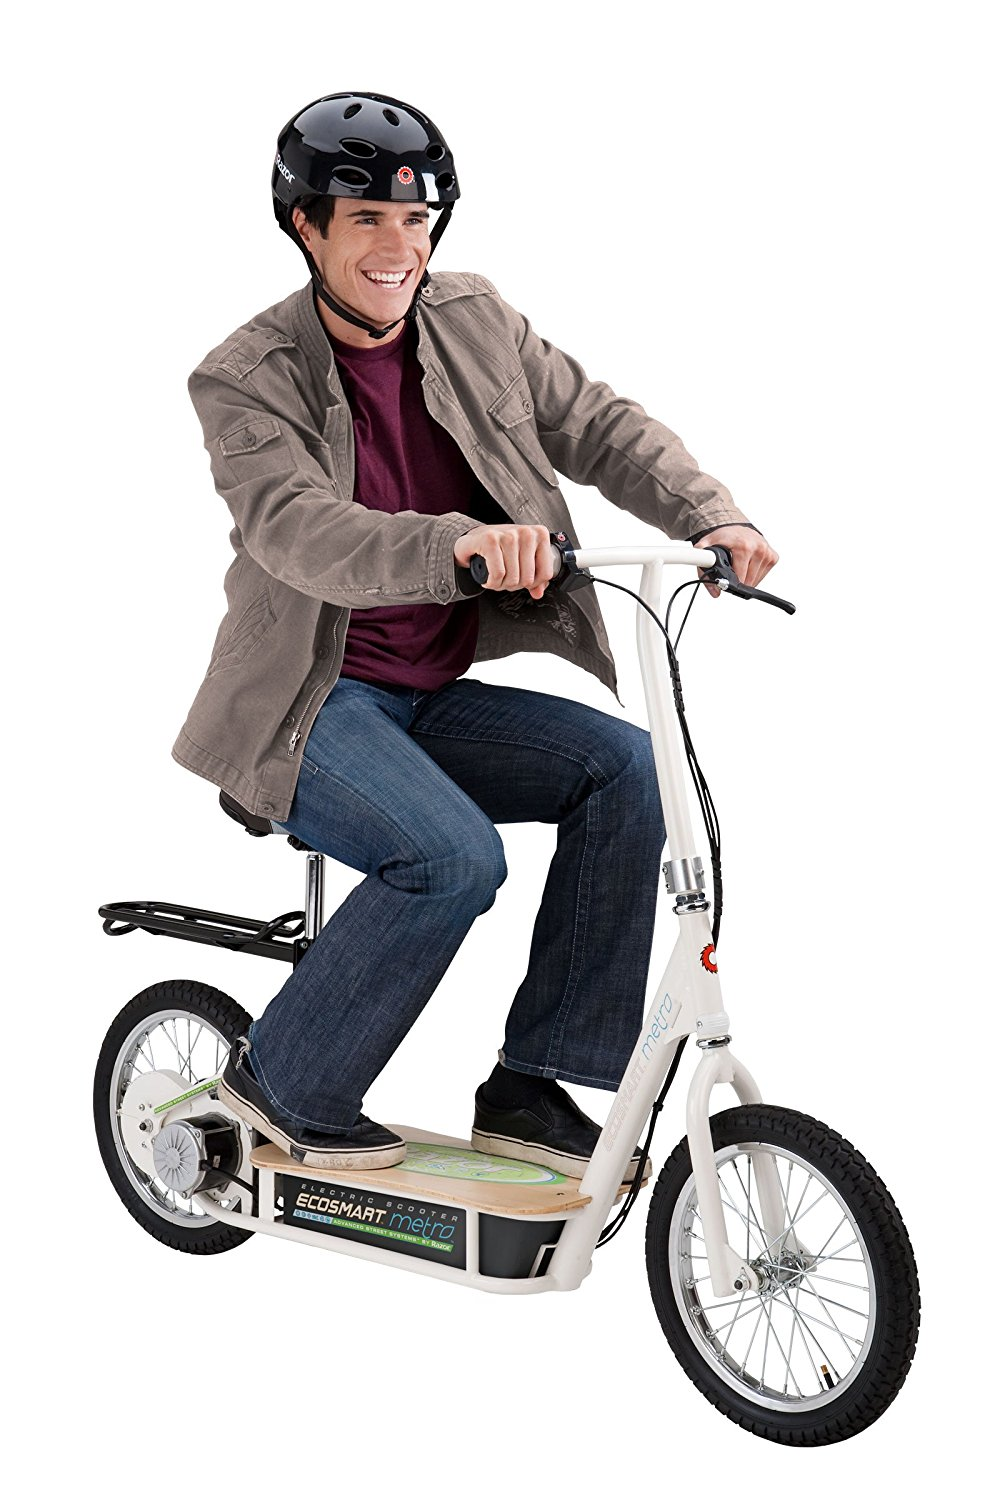 Best Electric Scooter for Adults 2017